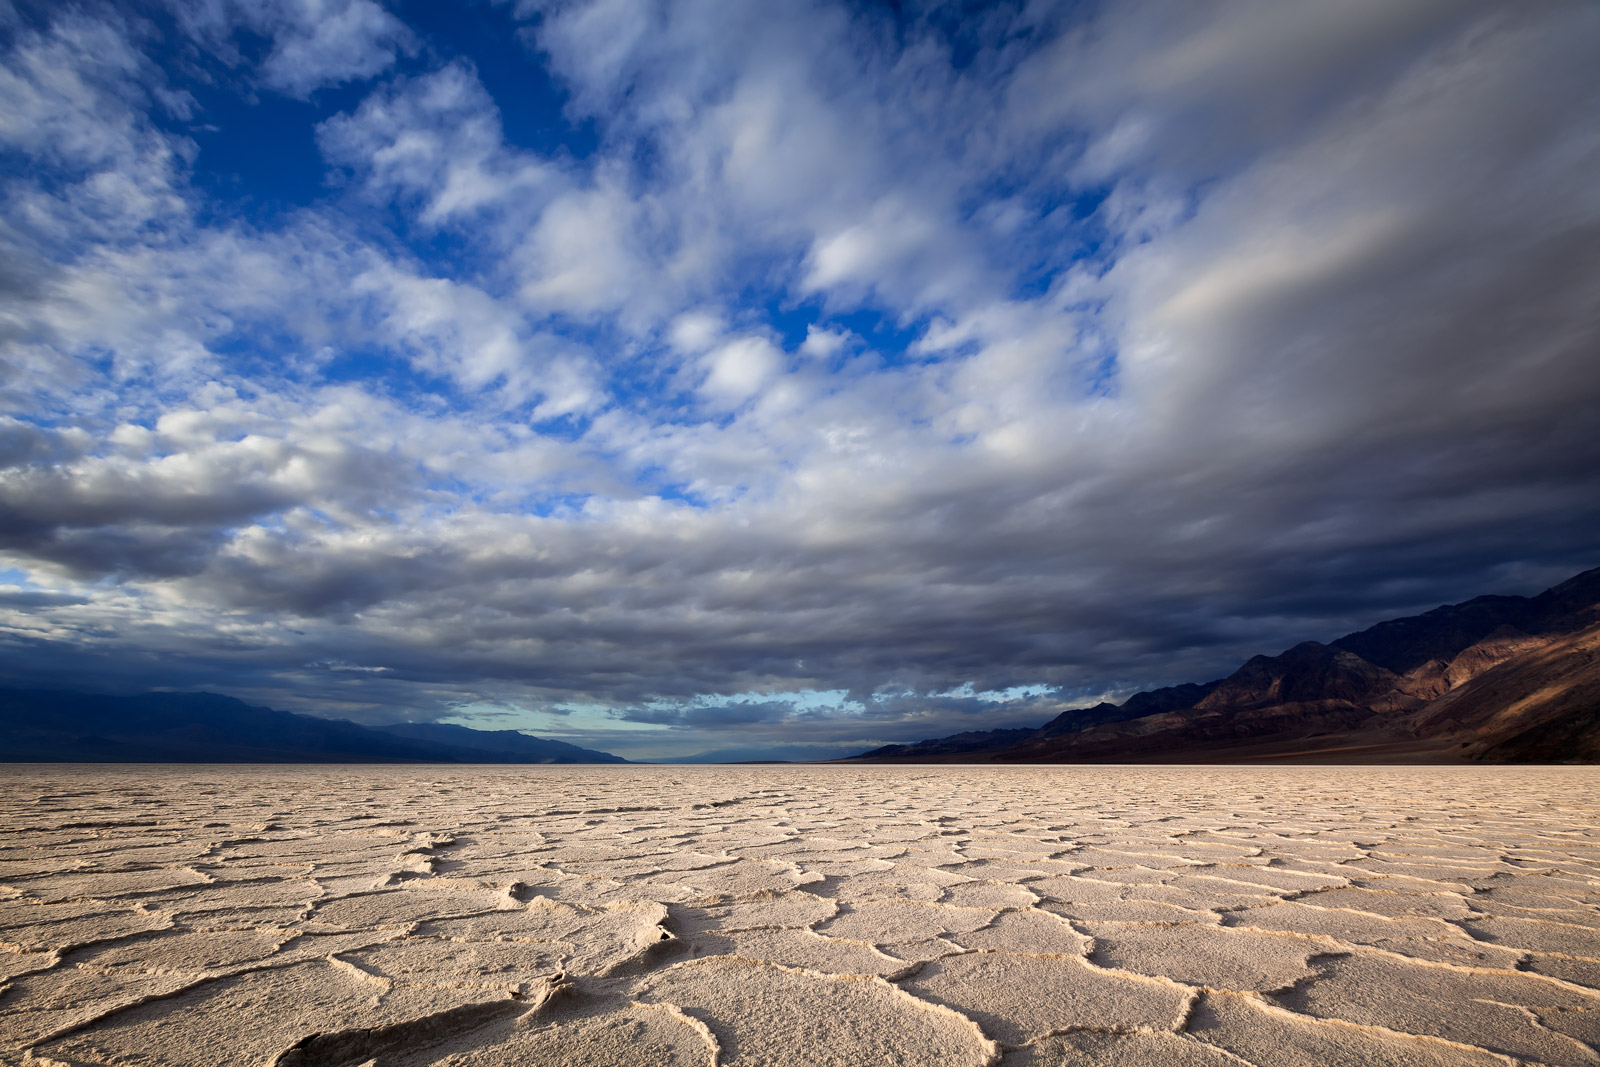 A Limited Edition, Fine Art photograph of Badwater Basin and the formations in the floor of the salt flats under rapidly changing...